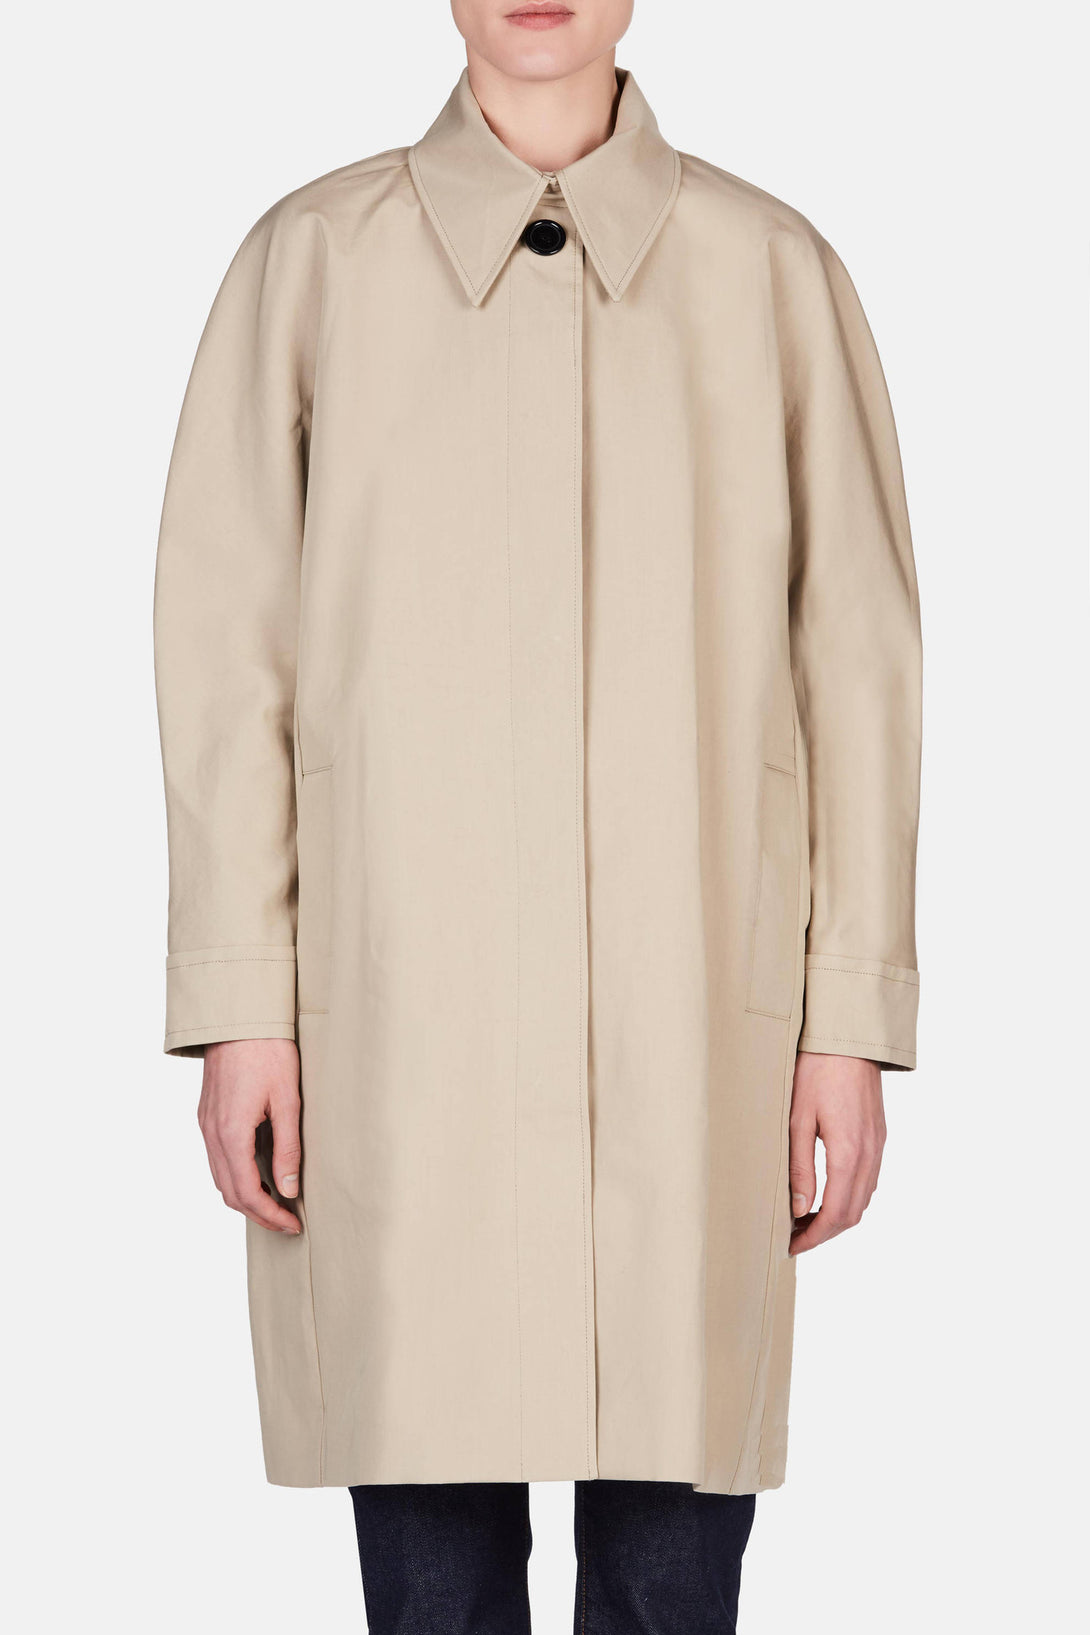 Berlin Coat - Beige